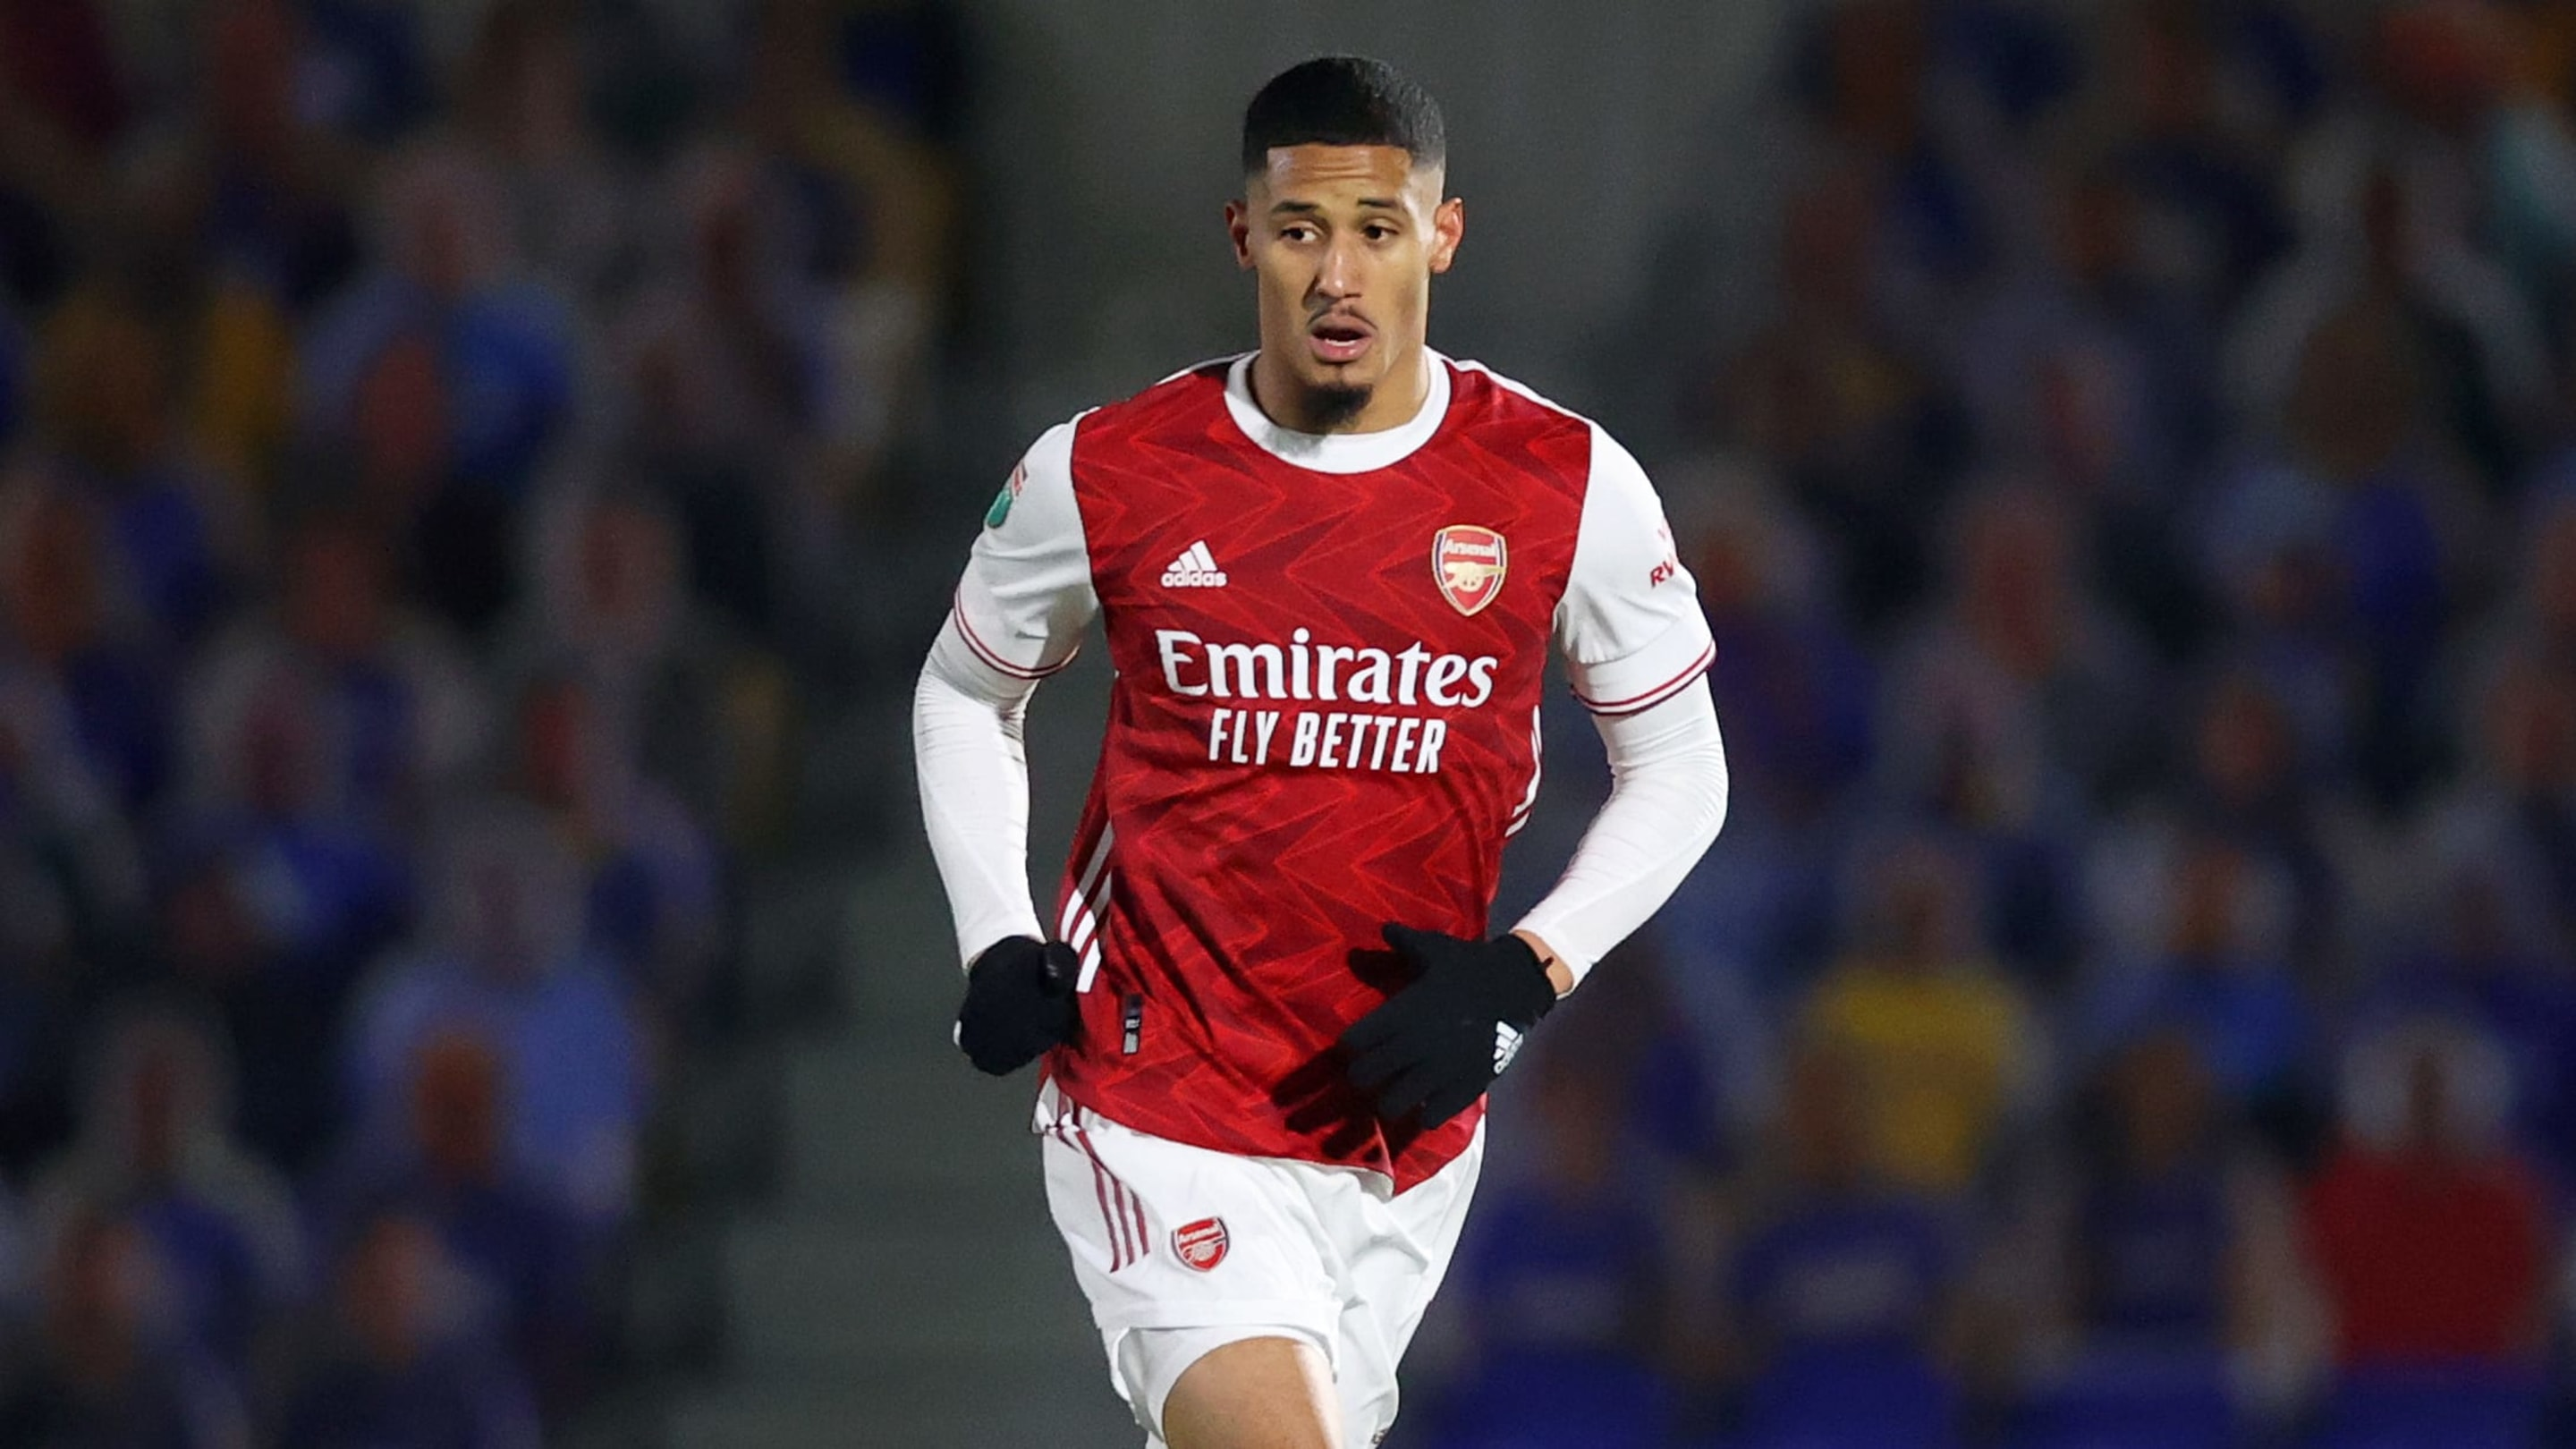 William Saliba at Arsenal - what has gone so wrong?